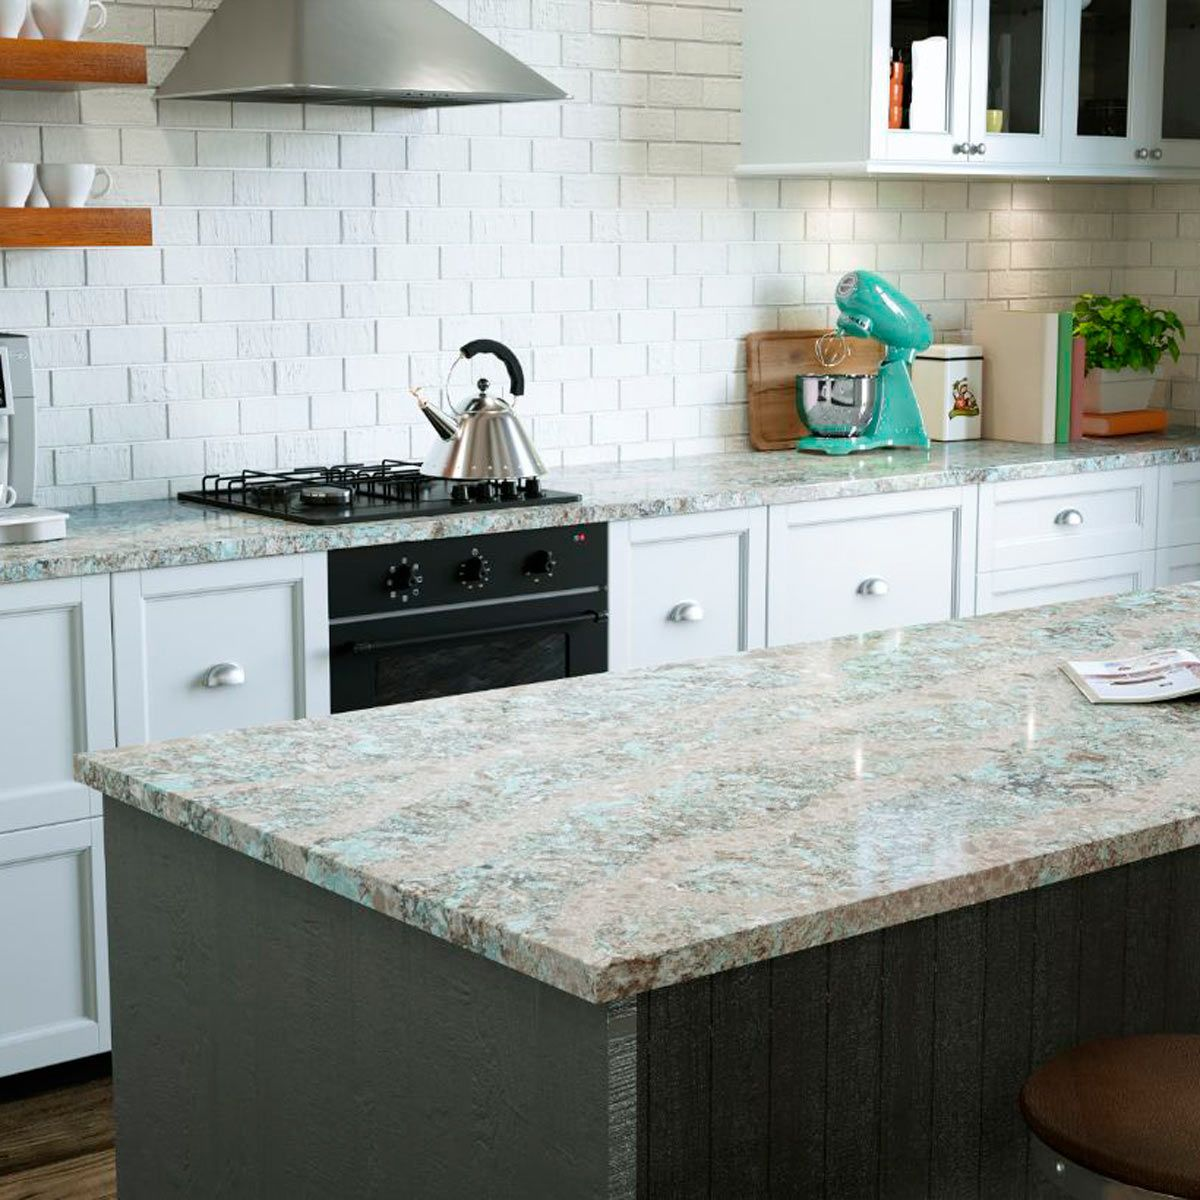 The Pros And Cons Of Quartz Countertops Kitchen Countertops